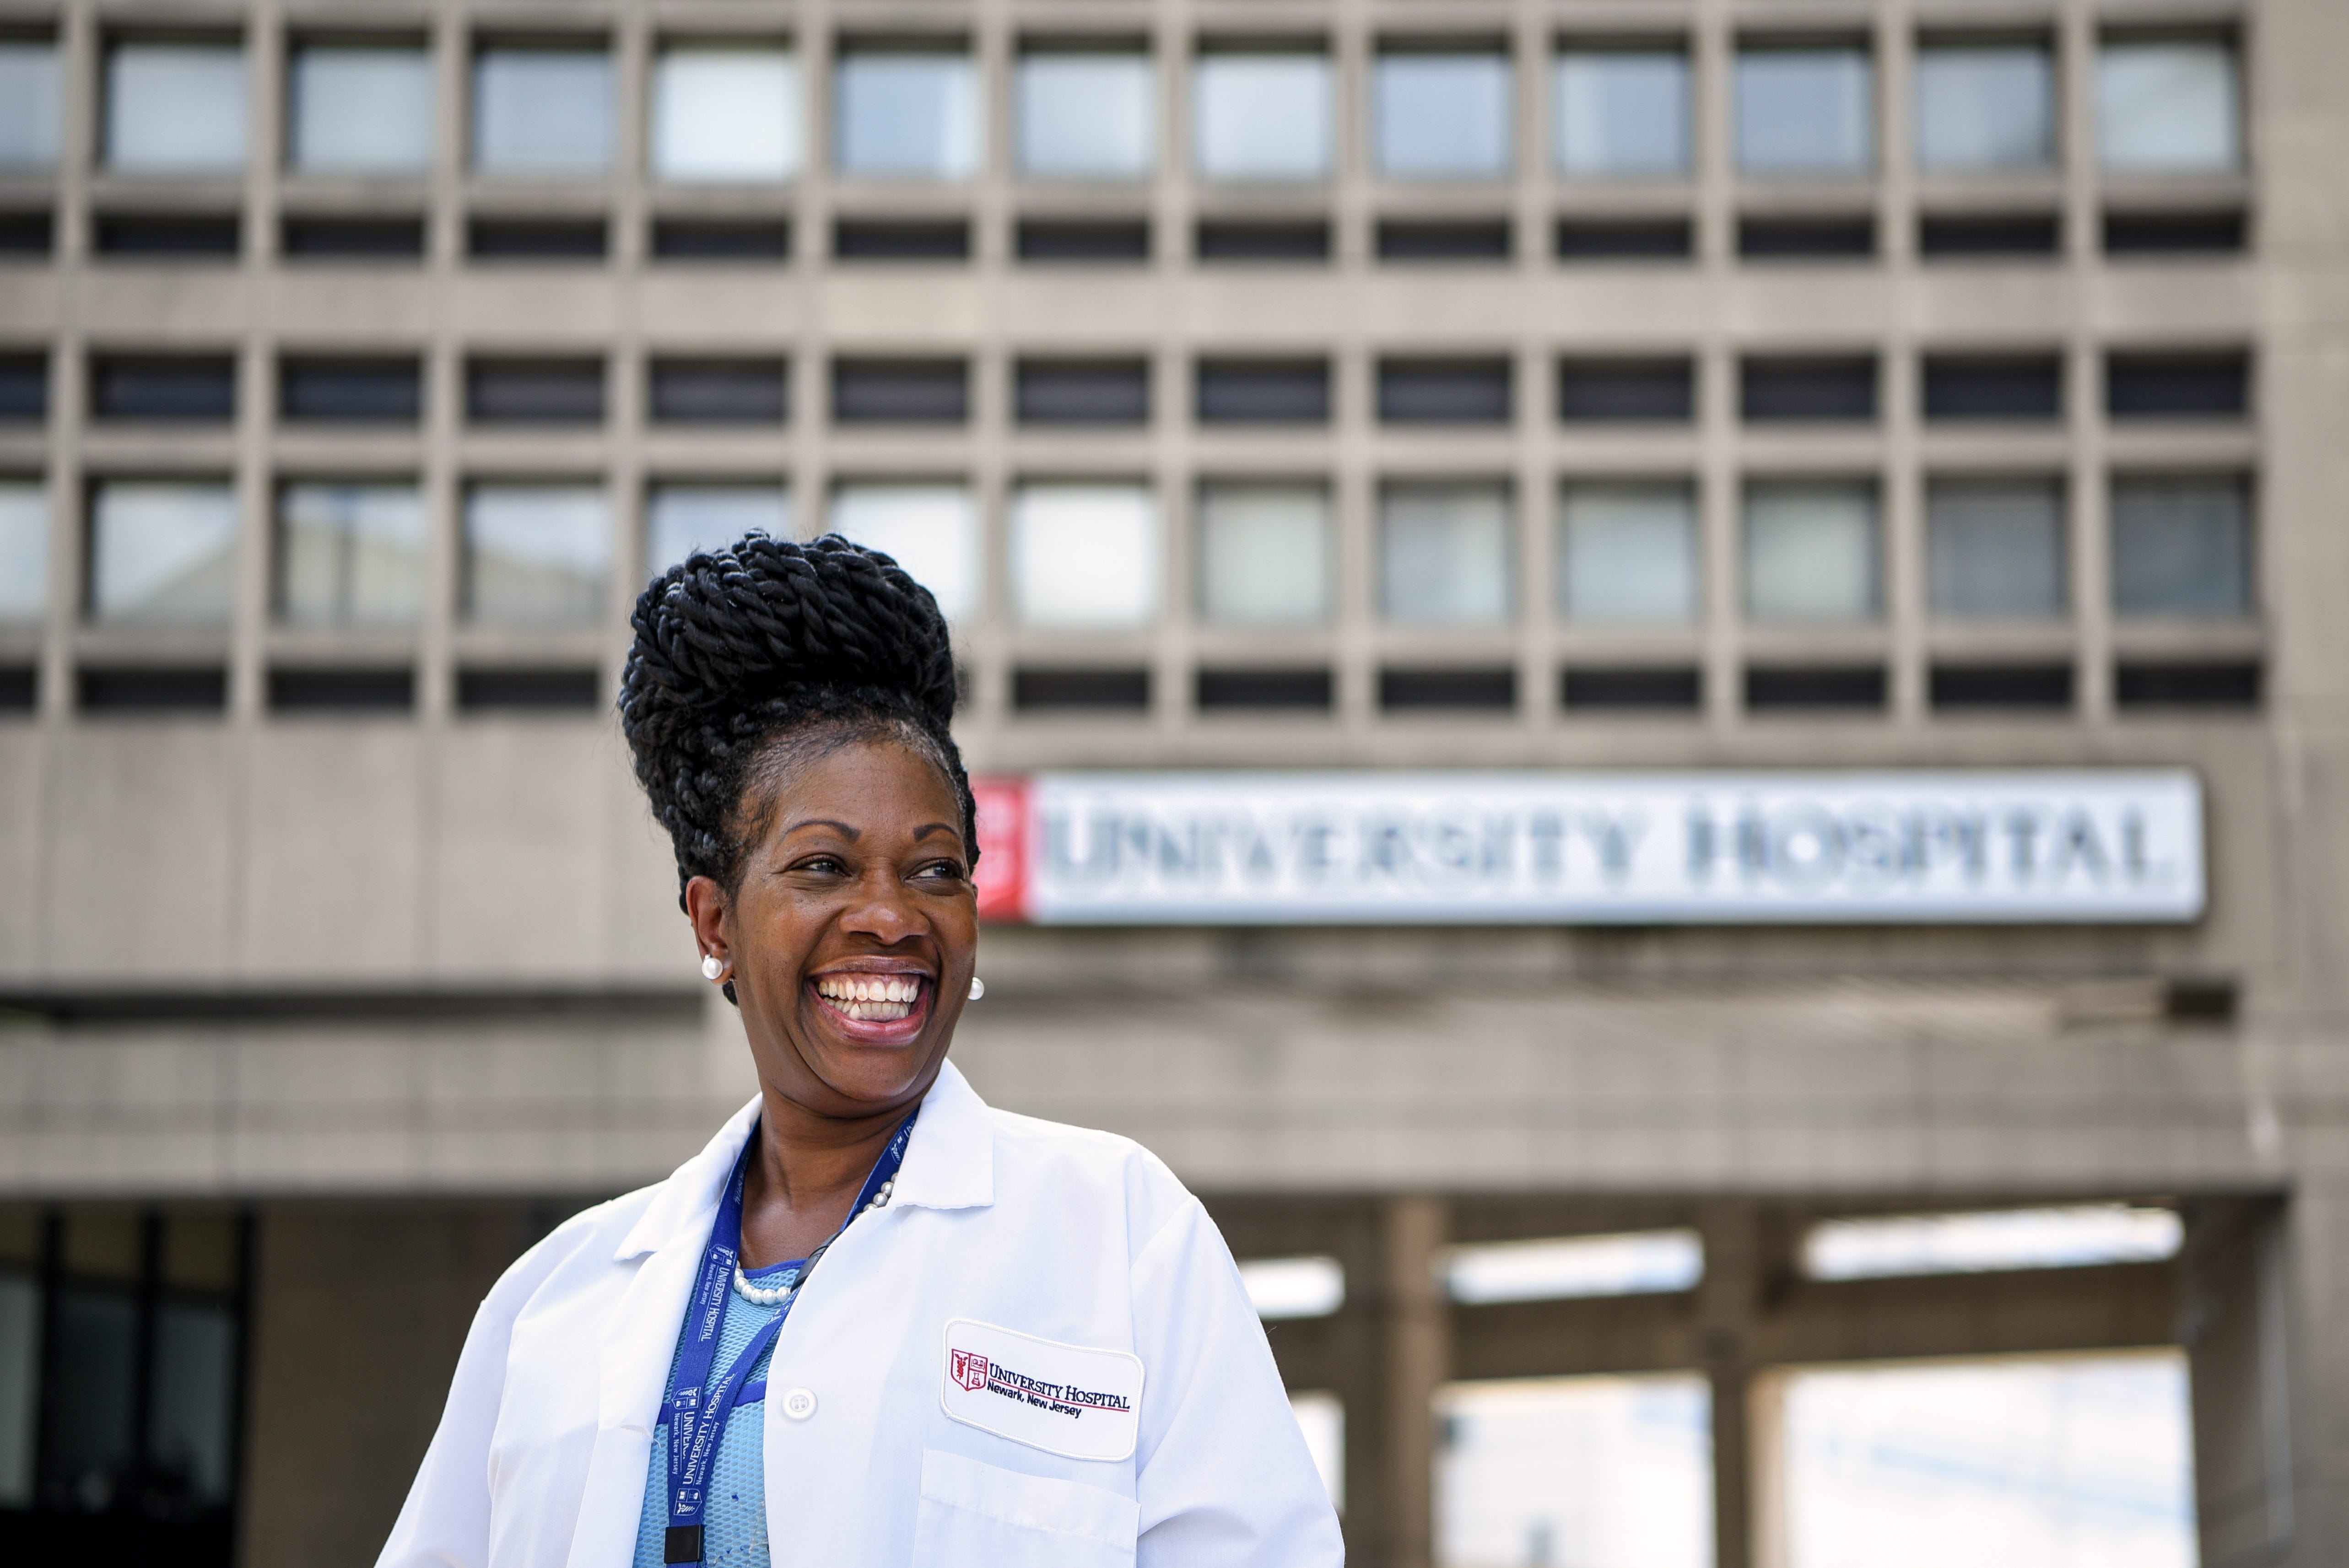 """Dr. Paige Long Sharps, Physician Advisor at University Hospital in Newark, New Jersey, was an OBGYN for almost 22 years at Montefiore Medical Center in the Bronx. She believes women need to be their own advocates. """"There are some excellent great doctors out advocating,"""" she said. """"And now we're bringing things to the forefront, and speaking on biases that some of us may not be aware of — and there are biases even among doctors of color, towards people of color."""""""